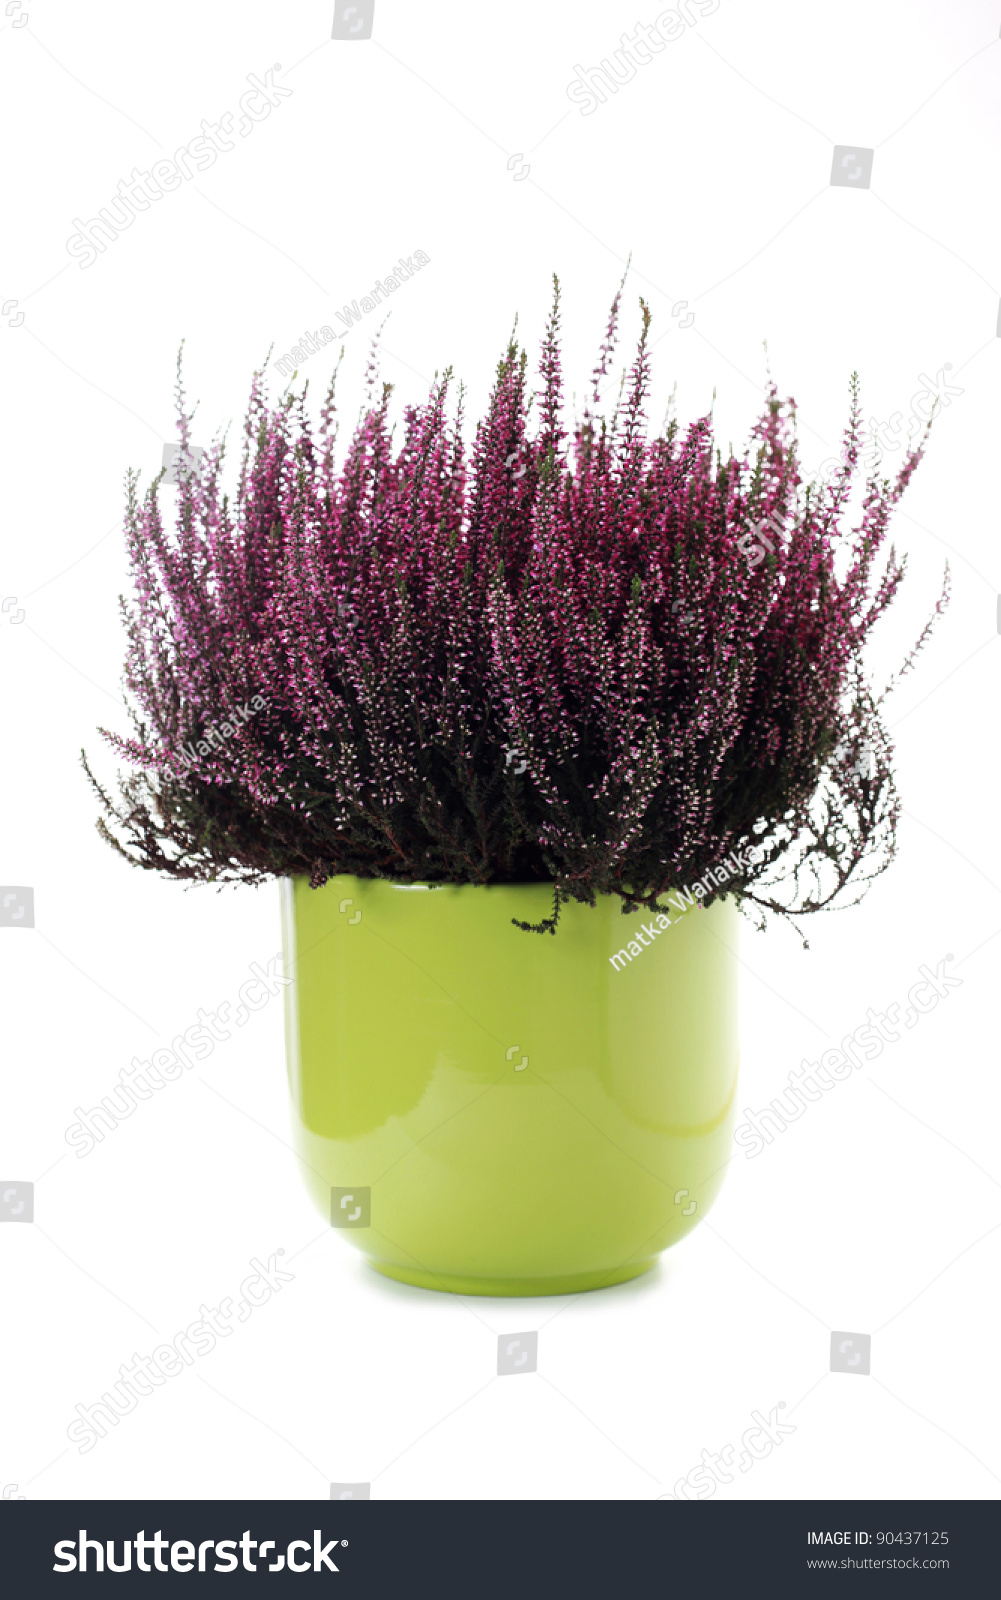 Green pot of heather on white background flowers and plants stock photo 90437125 shutterstock - Aromatic herbs pots multiple benefits ...